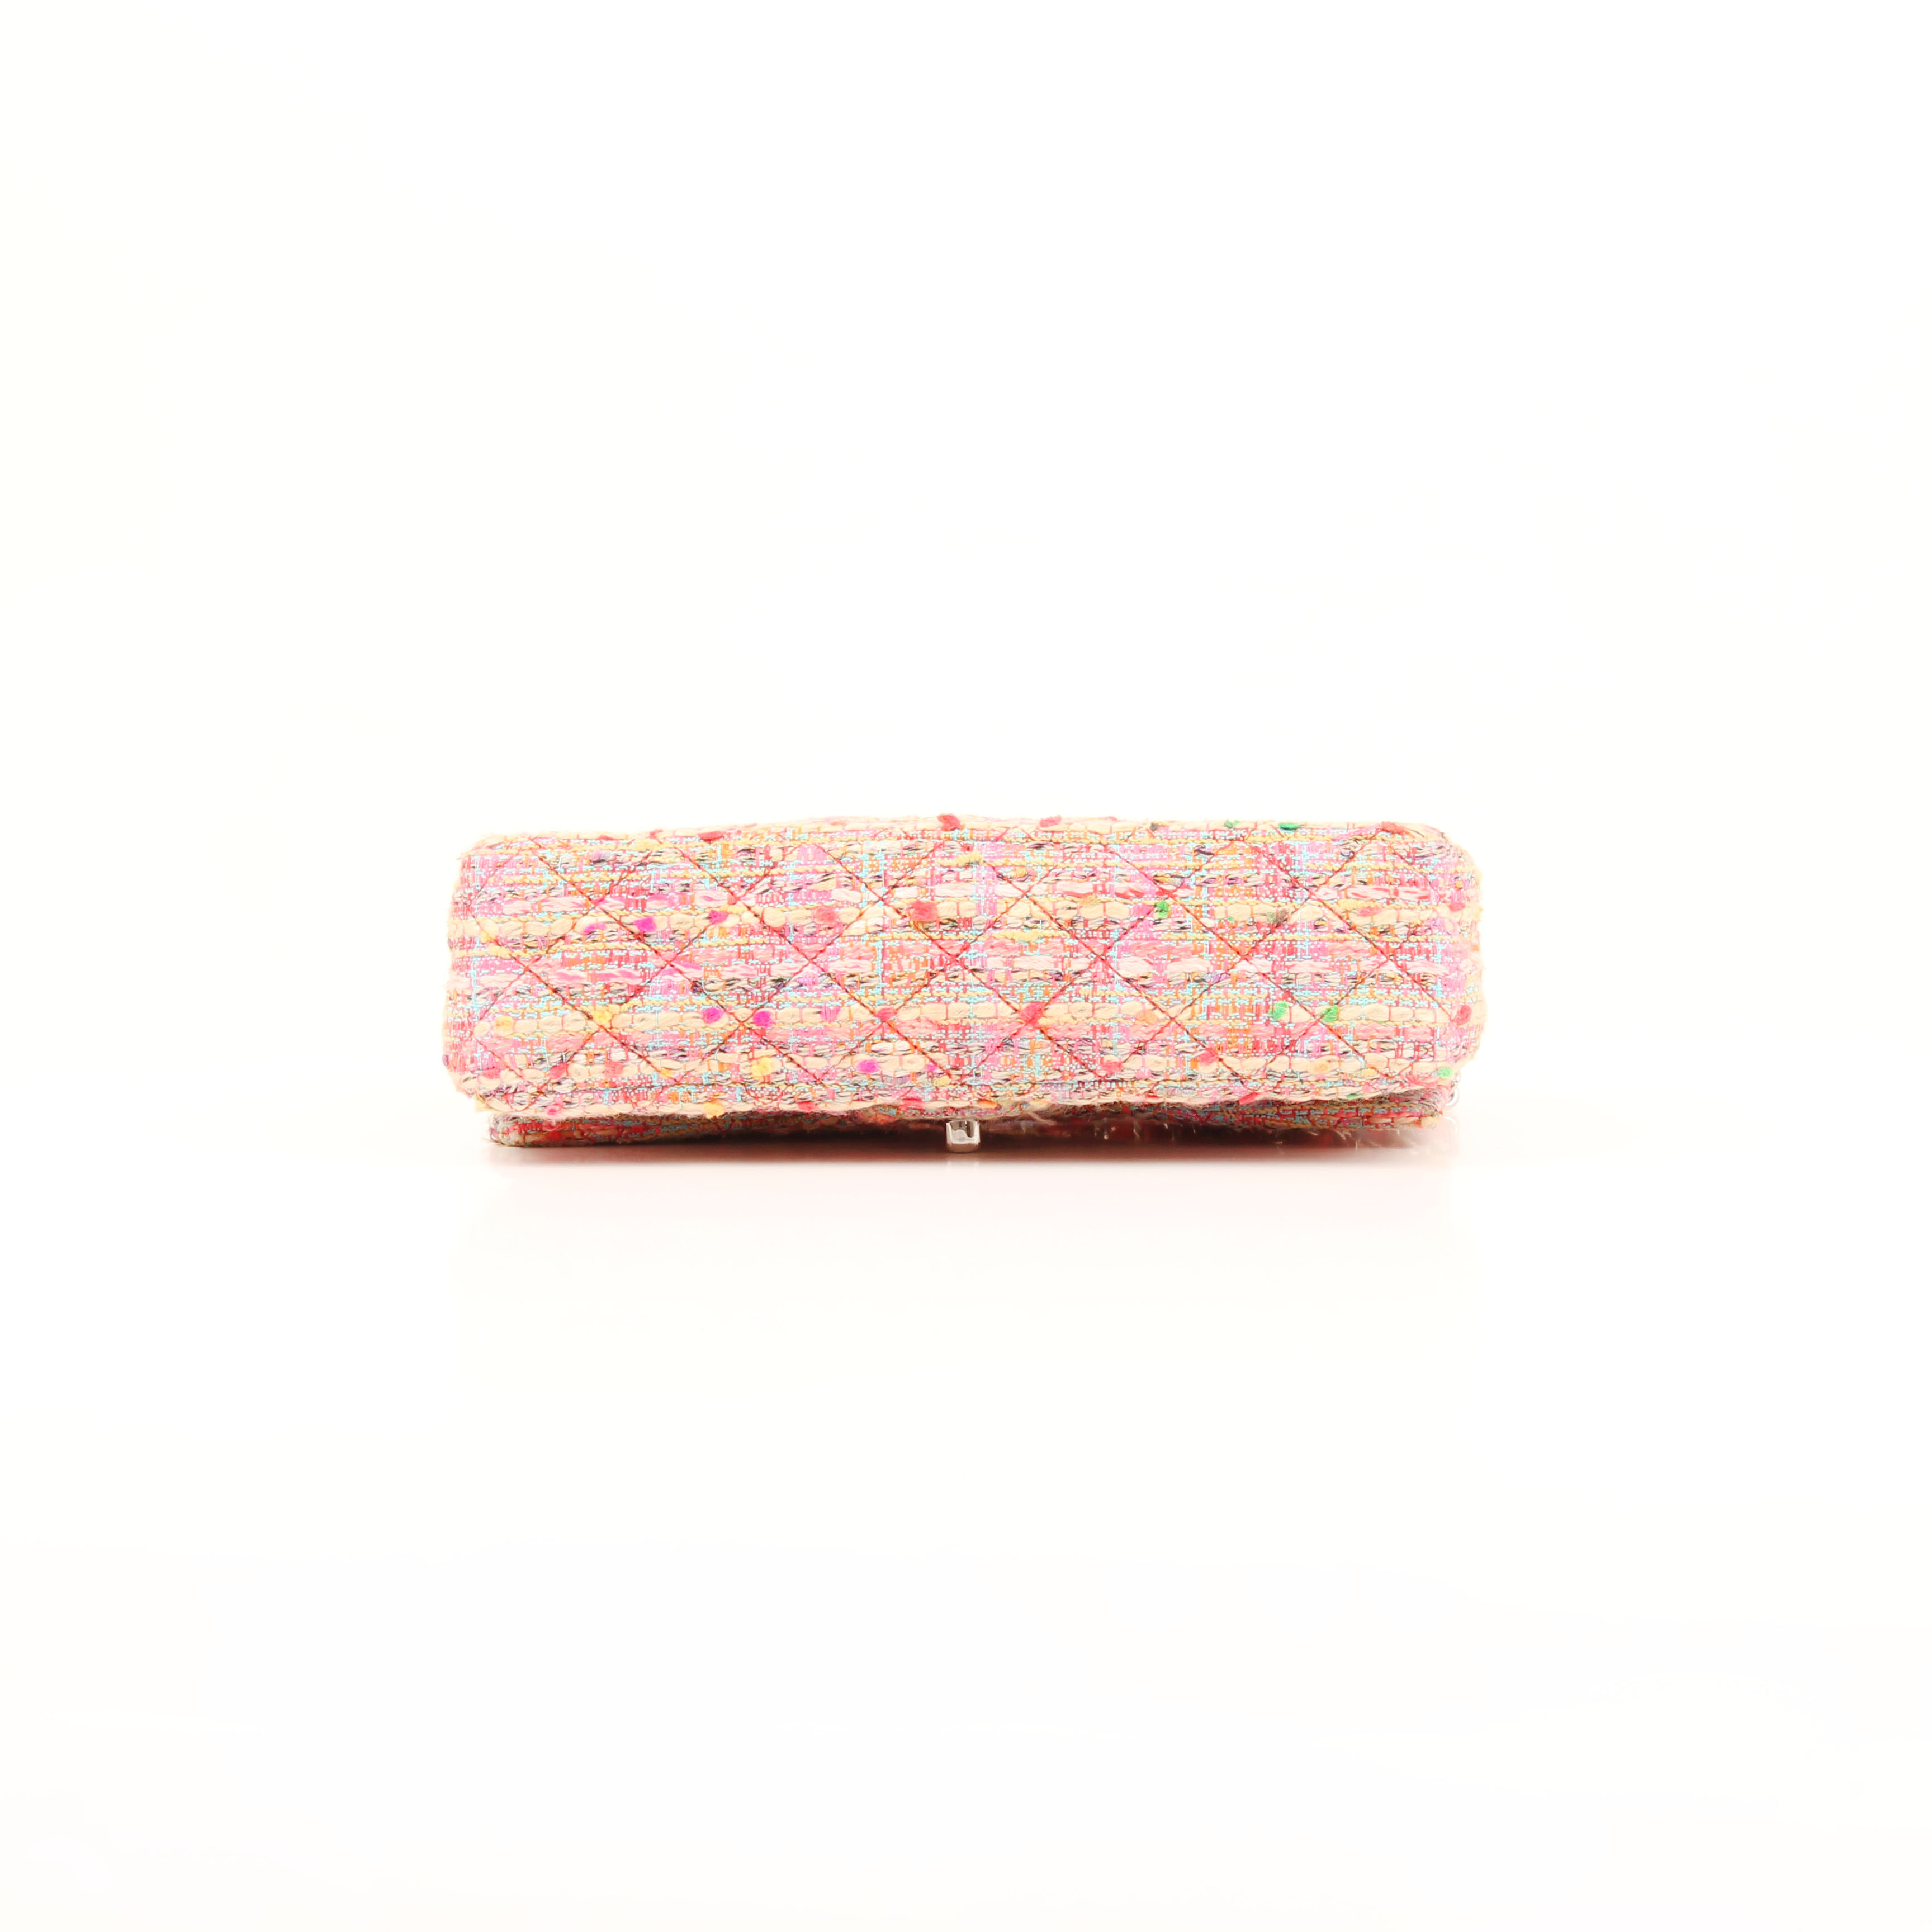 Bottom image from chanel timeless tweed pink multicolor neon double flap bag